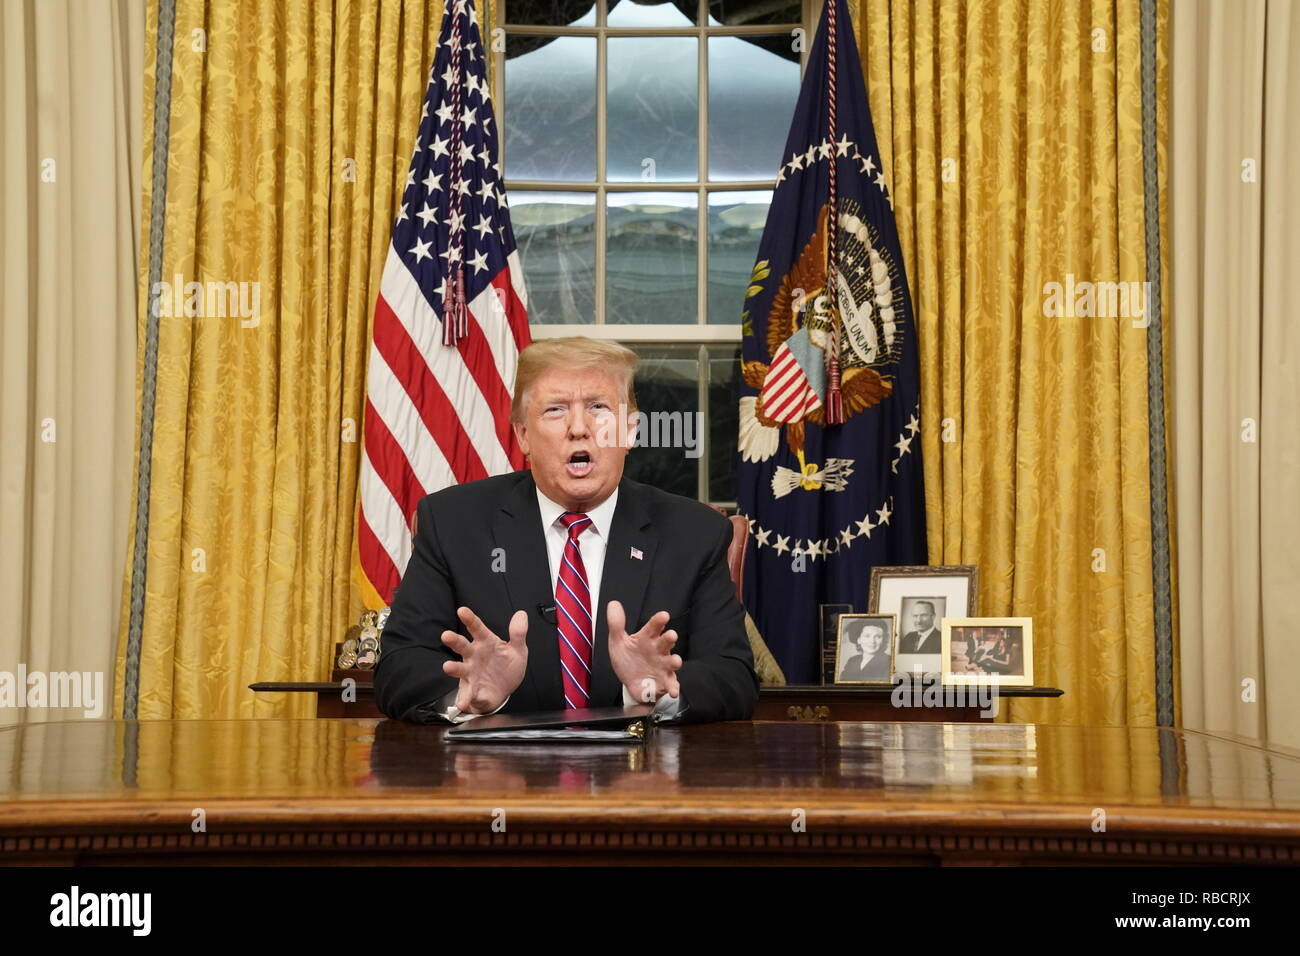 Washington, District of Columbia, USA. 8th Jan, 2019. WASHINGTON, DC - JANUARY 08: U.S. President Donald Trump speaks to the nation in his first-prime address from the Oval Office of the White House on January 8, 2019 in Washington, DC. A partial shutdown of the federal government has gone on for 17 days following the president's demand for $5.7 billion for a border wall while Democrats have refused. Credit: Carlos Barria/Pool via CNP Credit: Carlos Barria/CNP/ZUMA Wire/Alamy Live News - Stock Image